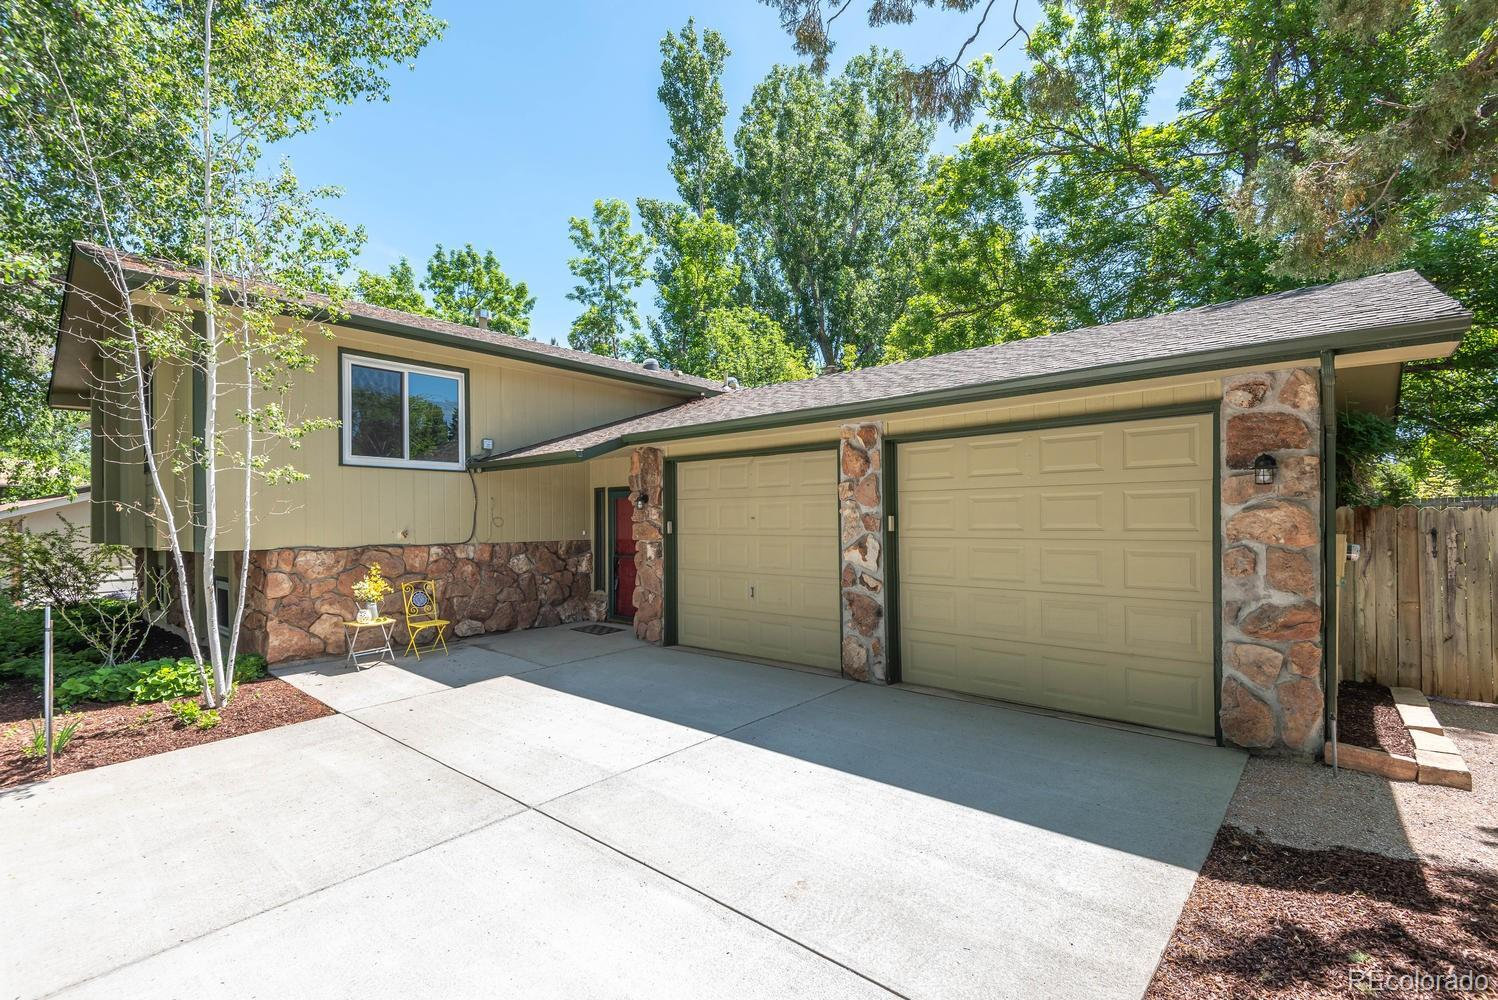 MLS# 1721225 - 1 - 2800 Chaparral Drive, Fort Collins, CO 80526